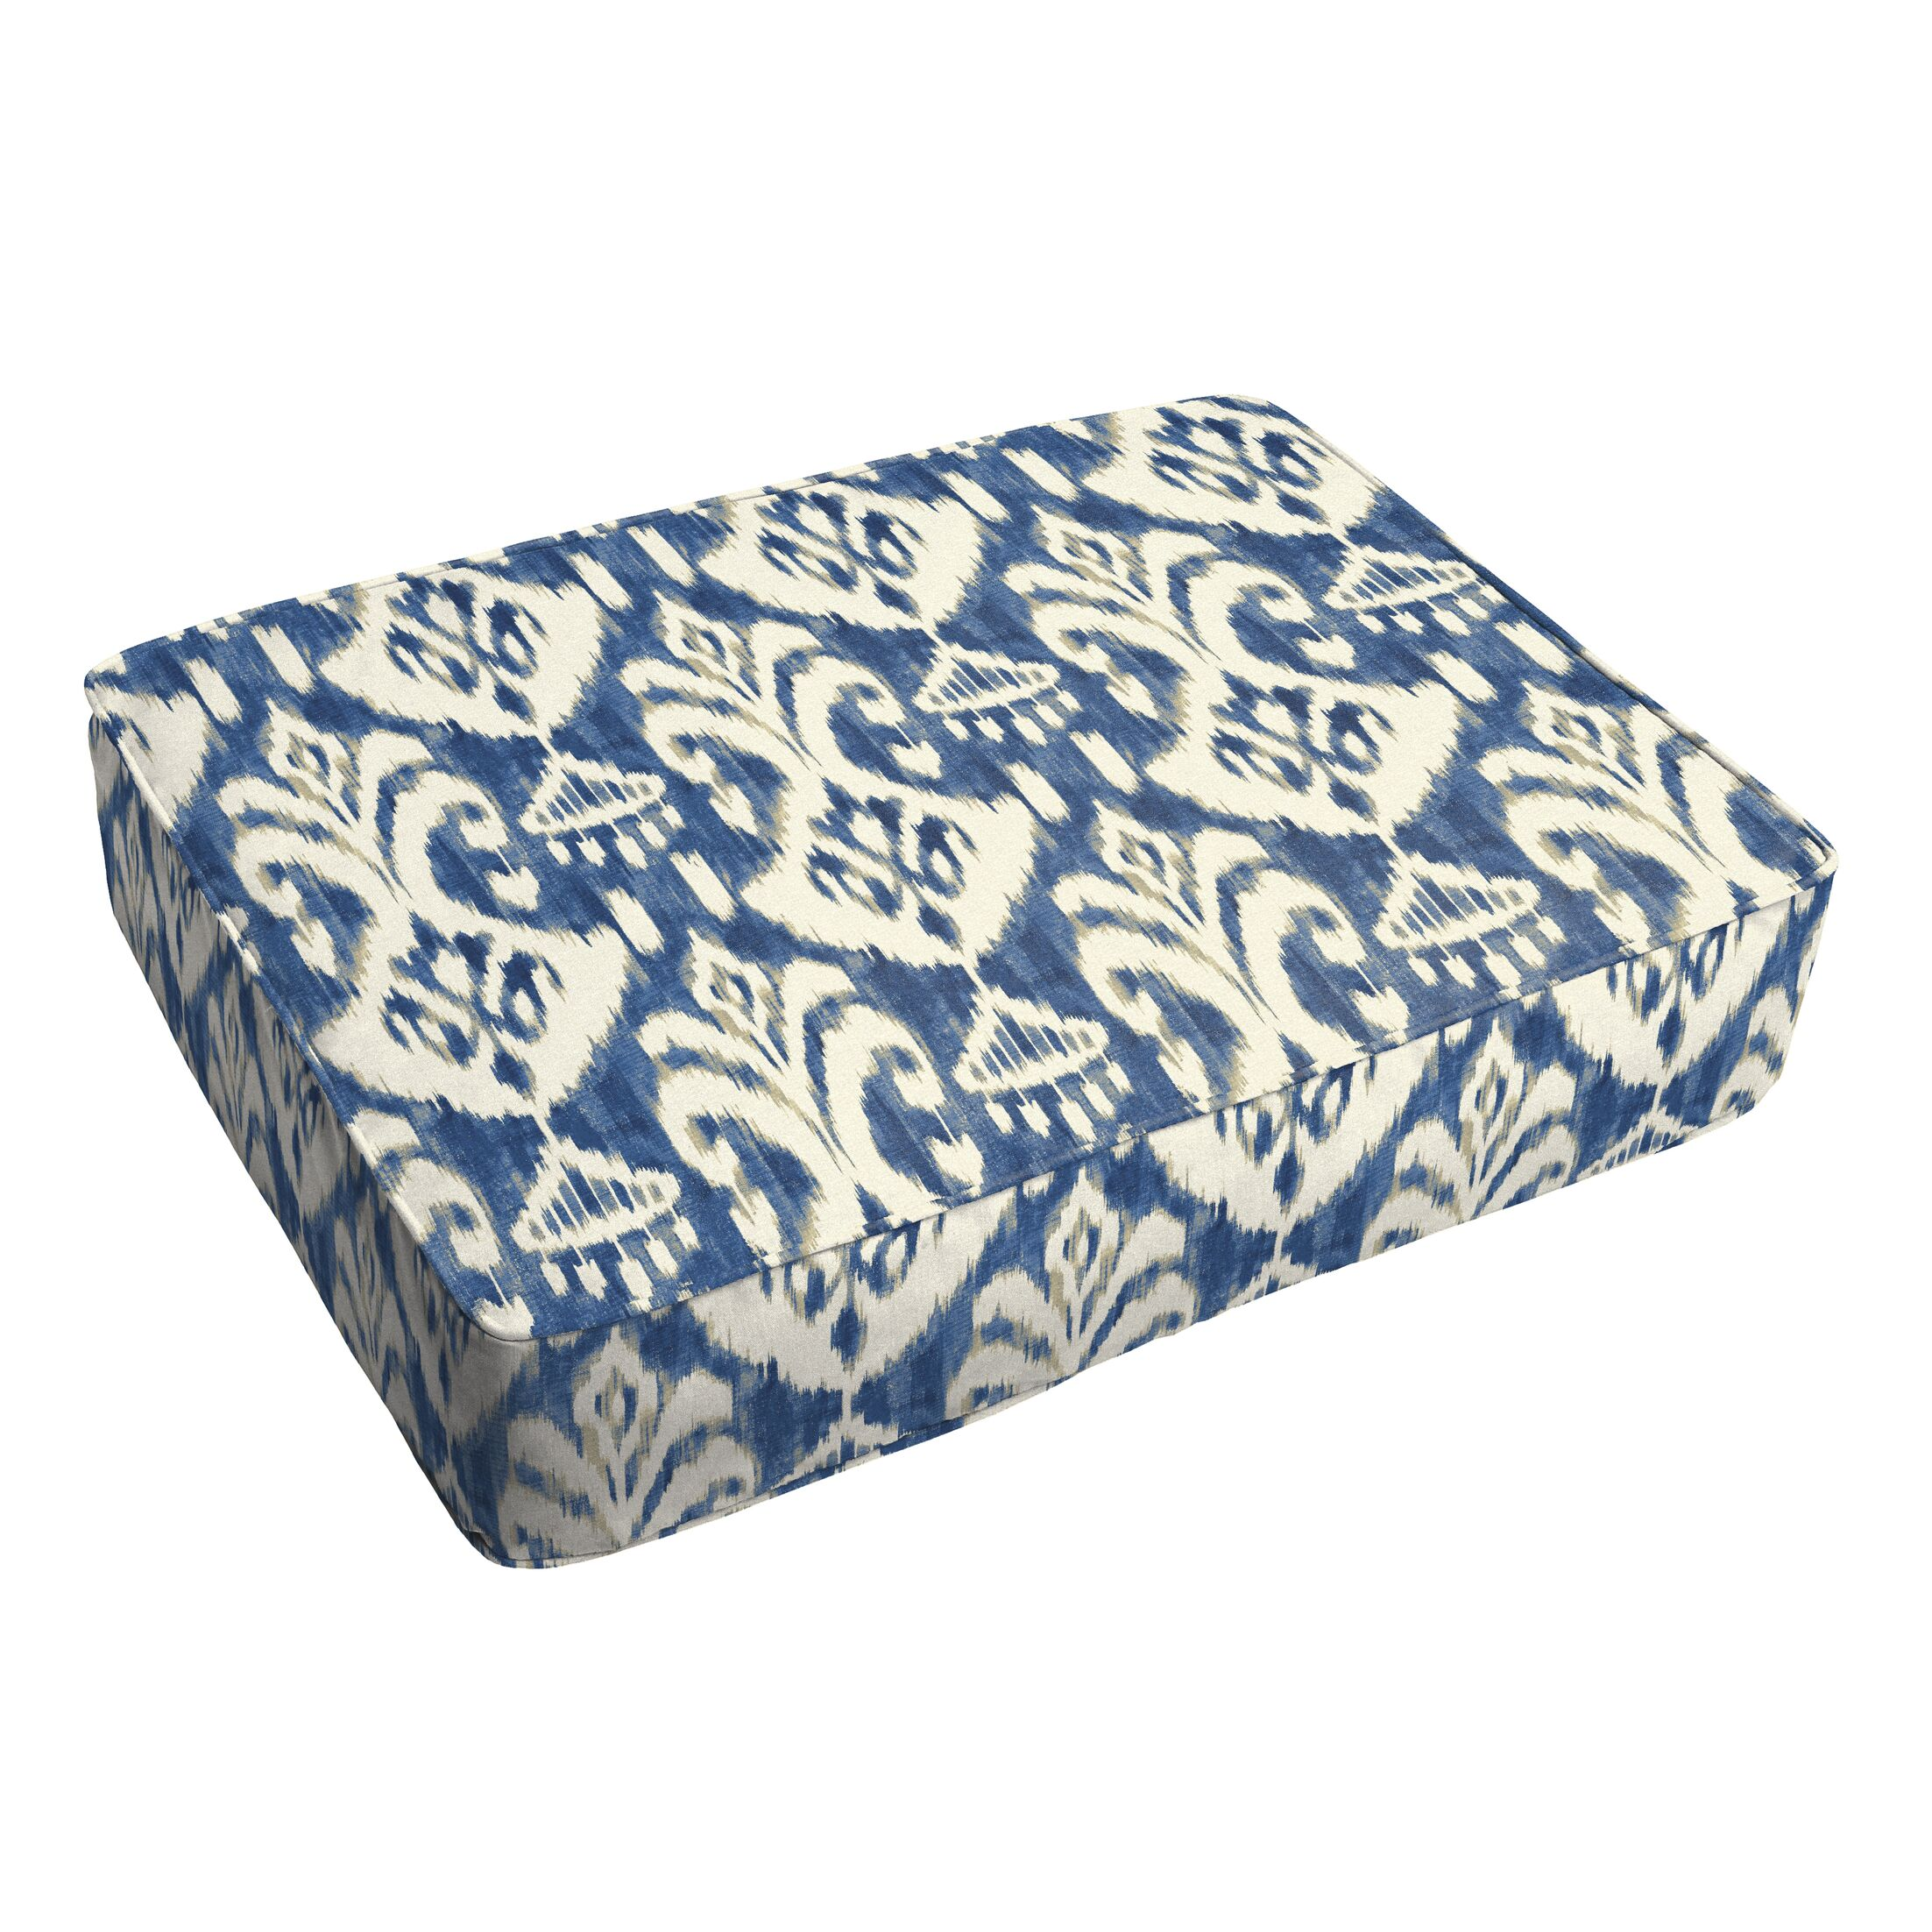 Peabody Ikat Piped Indoor/Outdoor Ottoman Cushion Fabric: Indigo/White